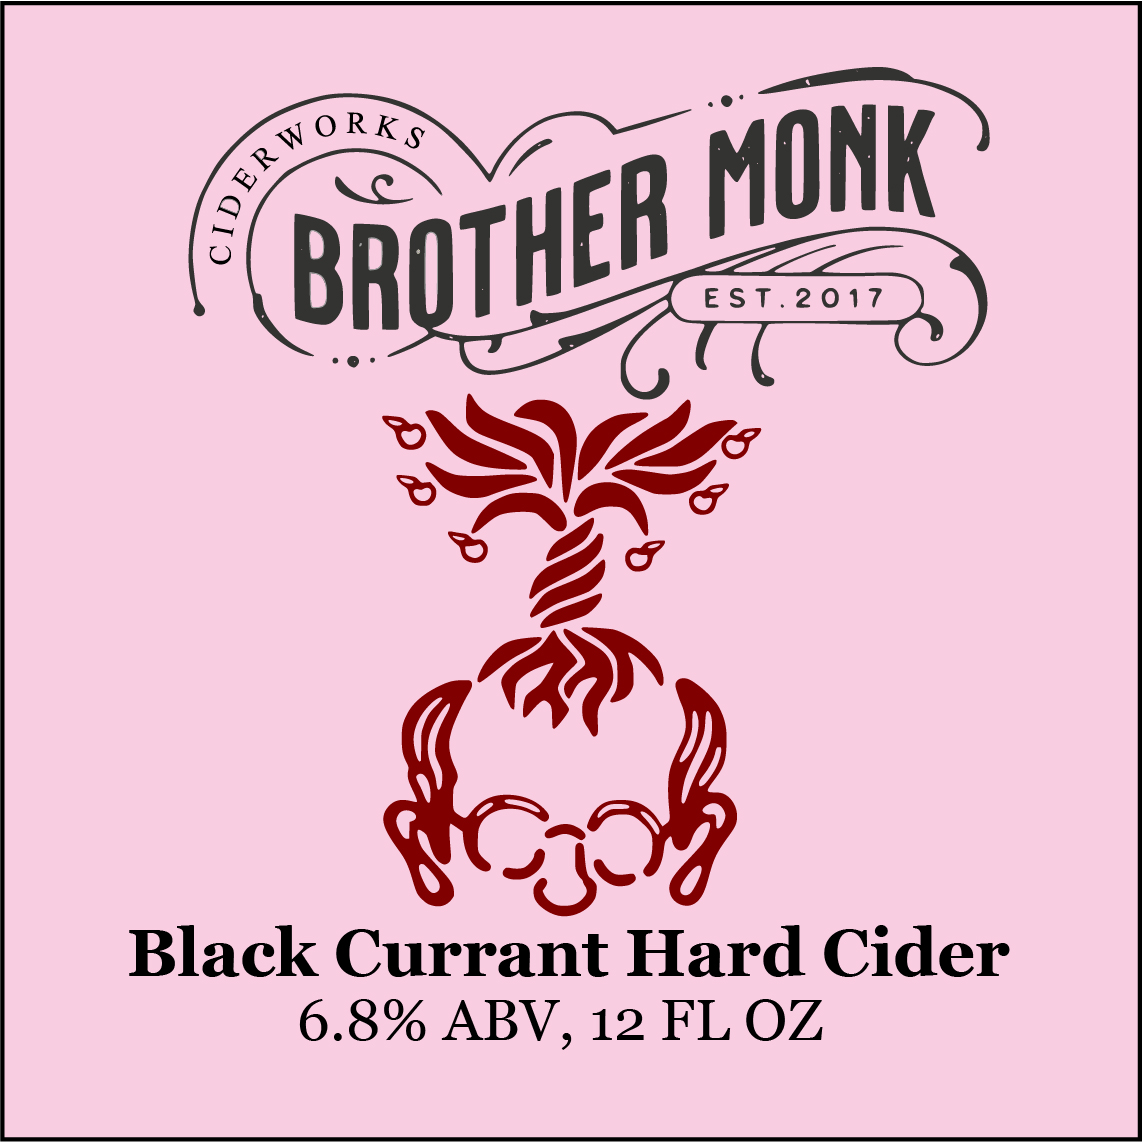 Black Currant Hard Cider Logo